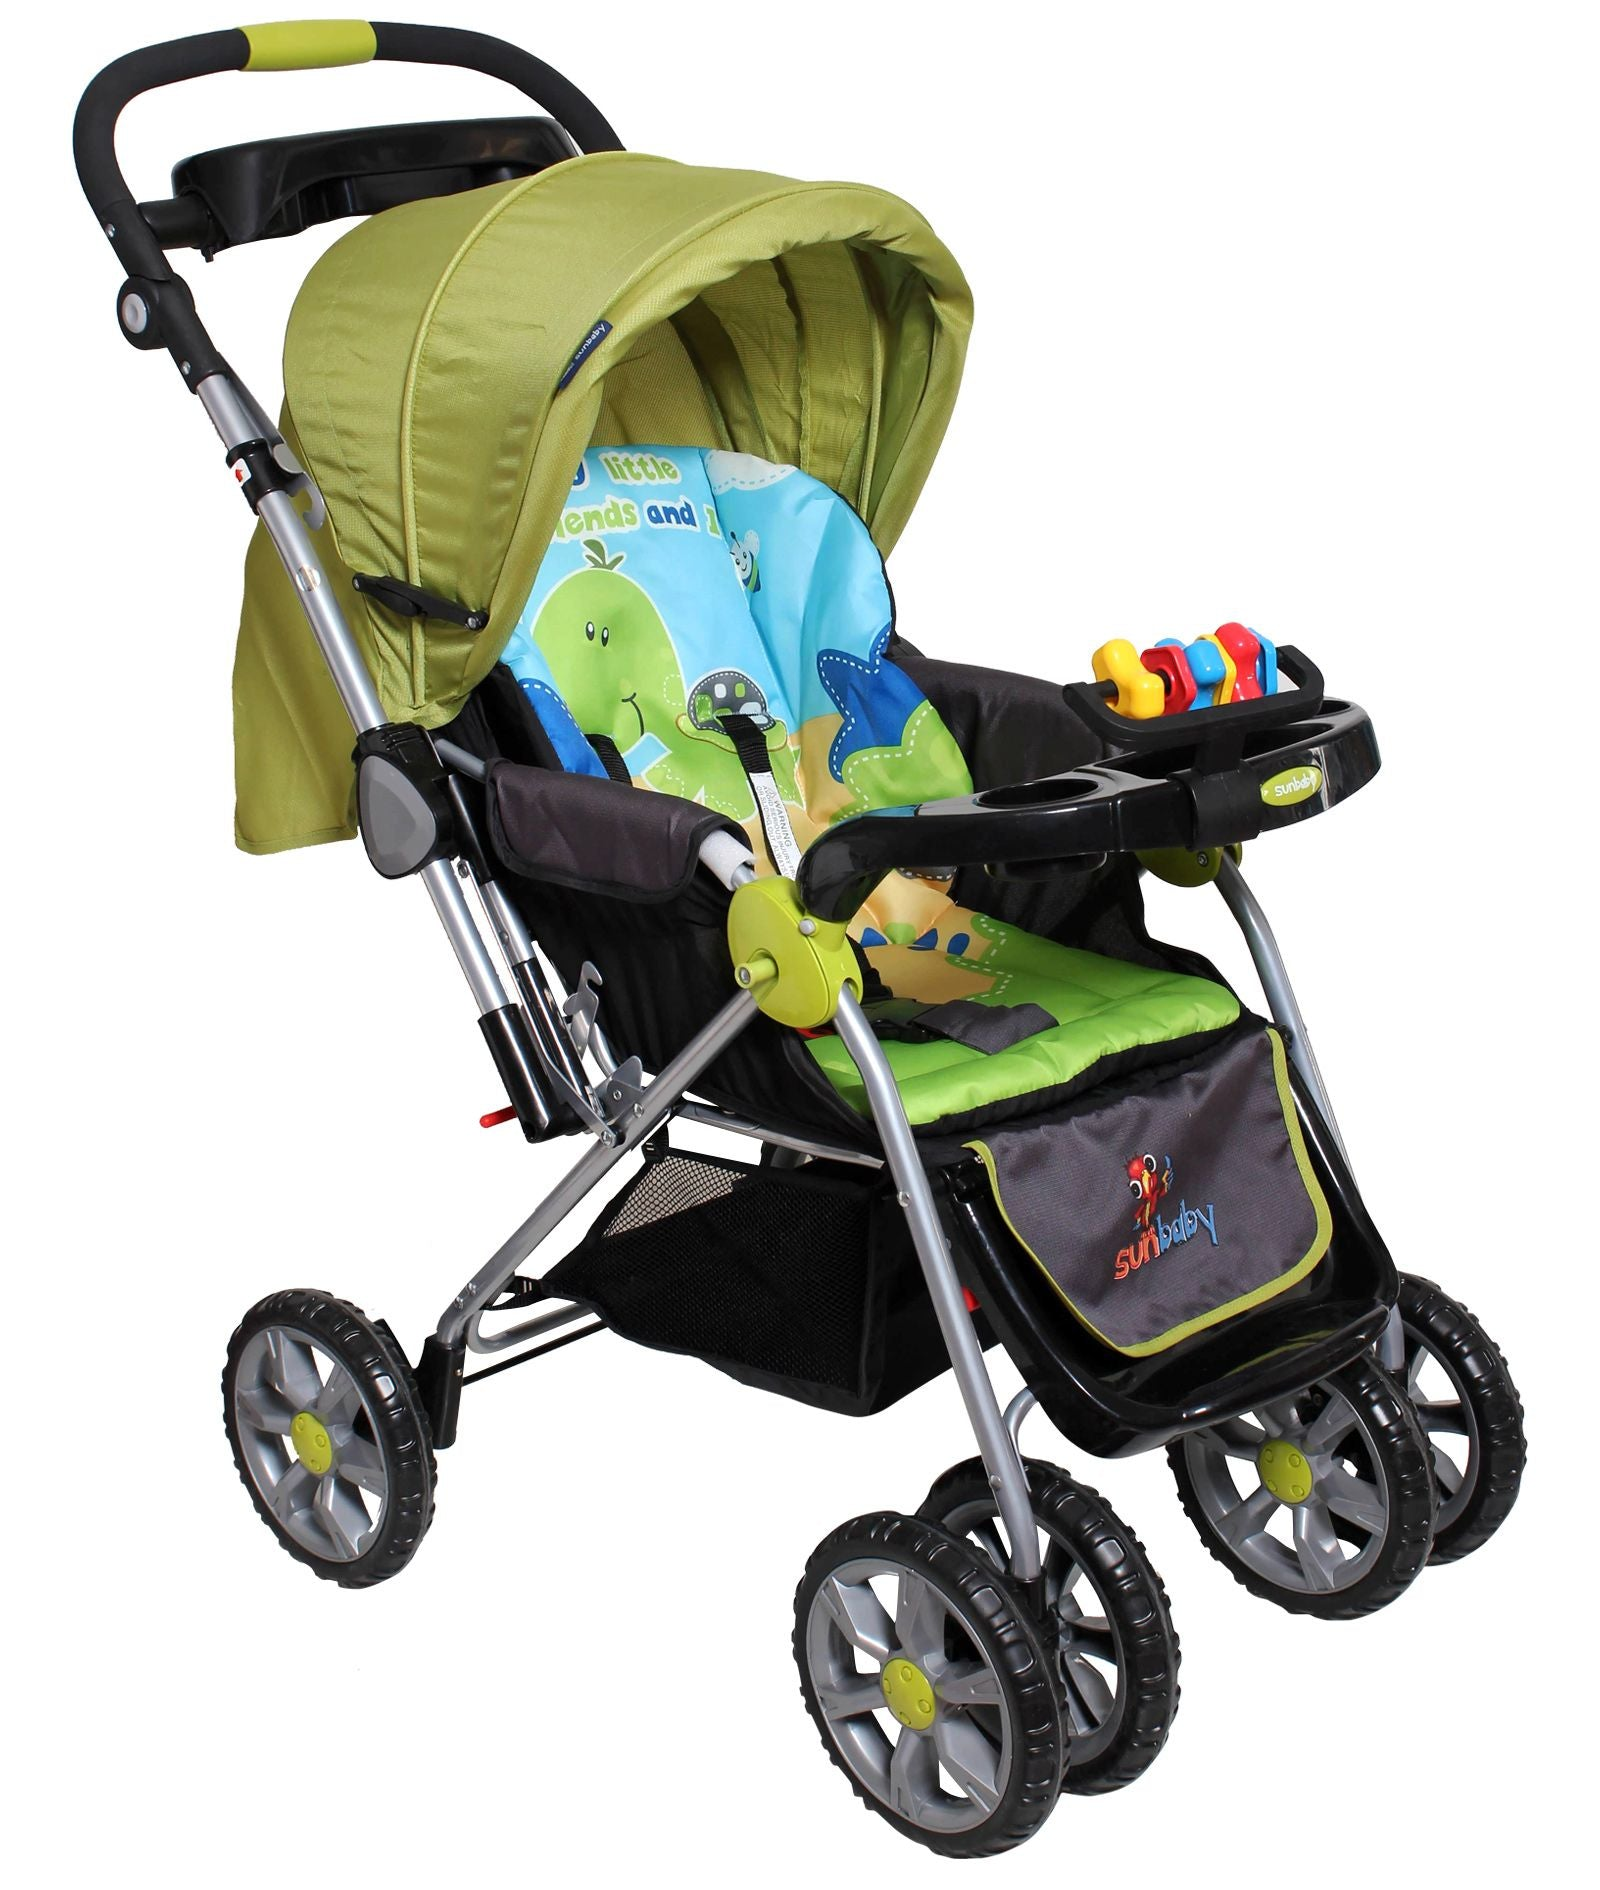 Stroller, Baby Stroller for Your Lifestyle